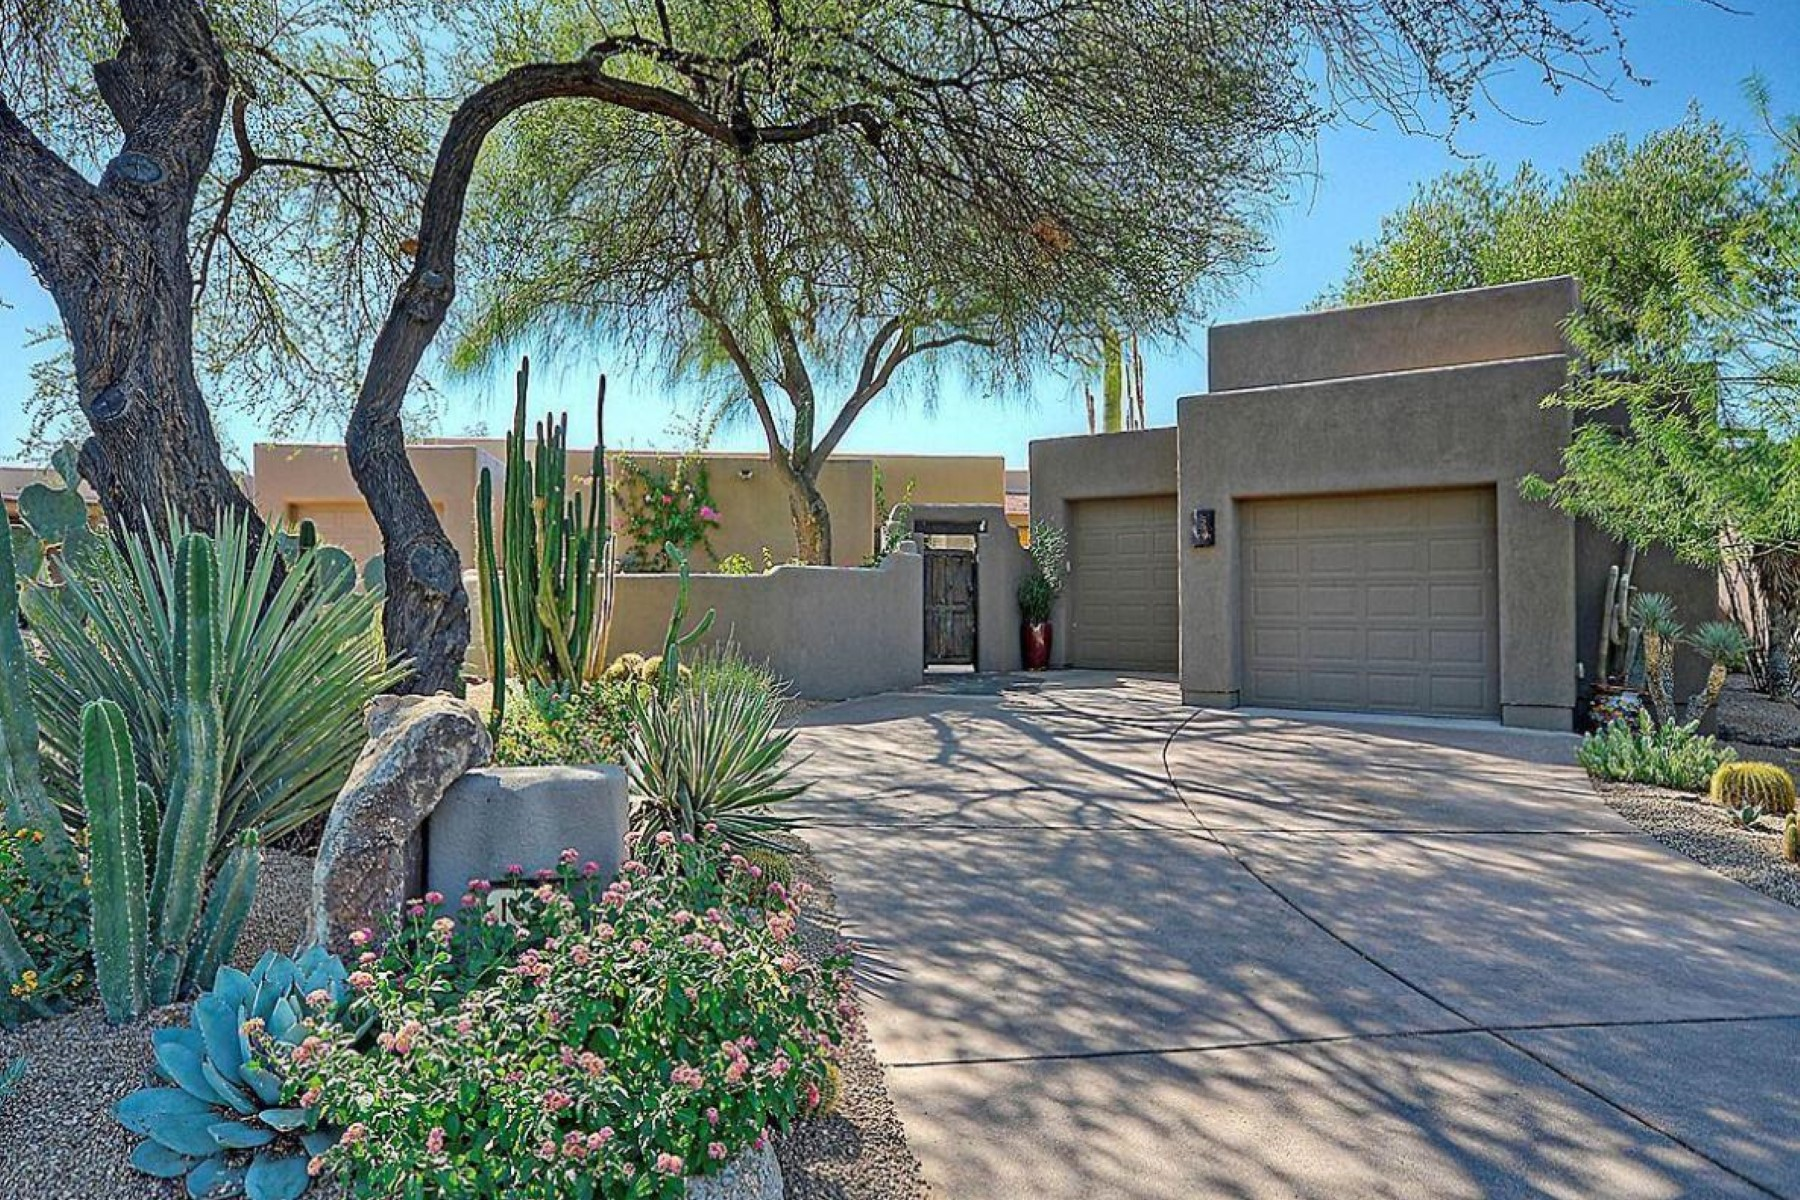 Maison de ville pour l Vente à Beautiful townhouse in The Boulders 1631 N Quartz Valley Rd Scottsdale, Arizona 85266 États-Unis